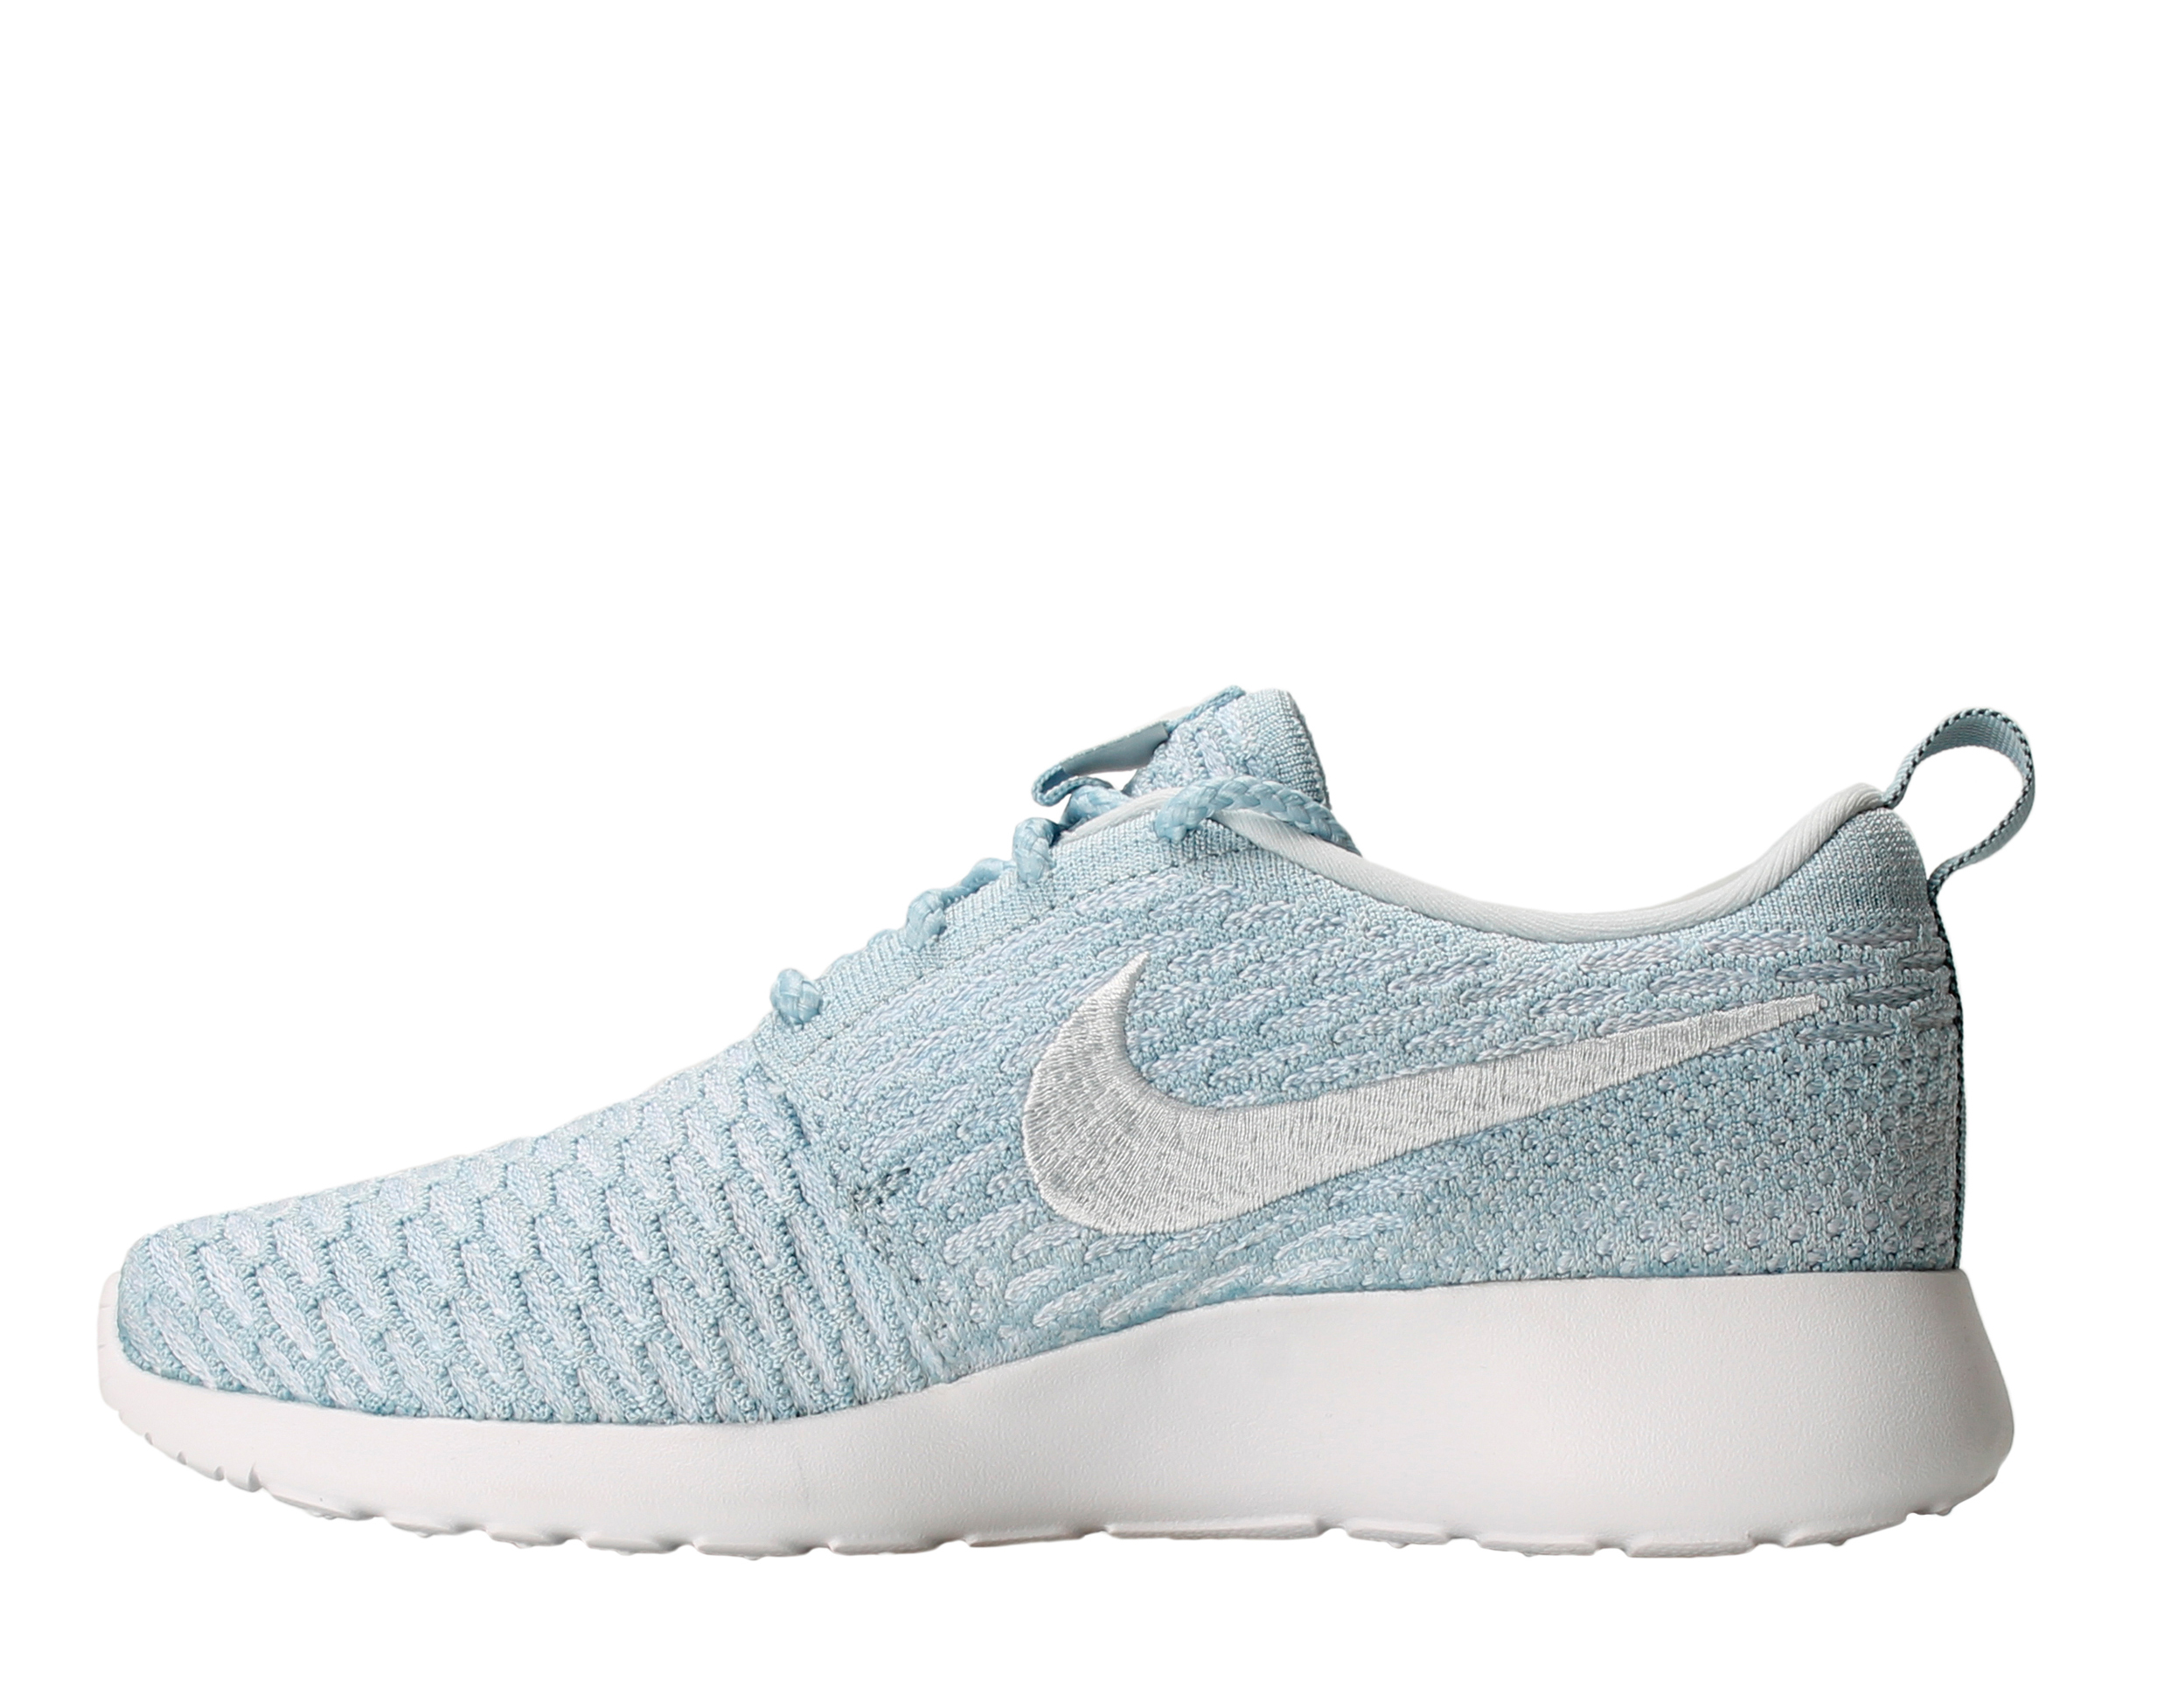 hot sale online 376b8 dc7aa ... spain nike nike roshe one flyknit light armory blue white womens running  shoes 704927 401 walmart